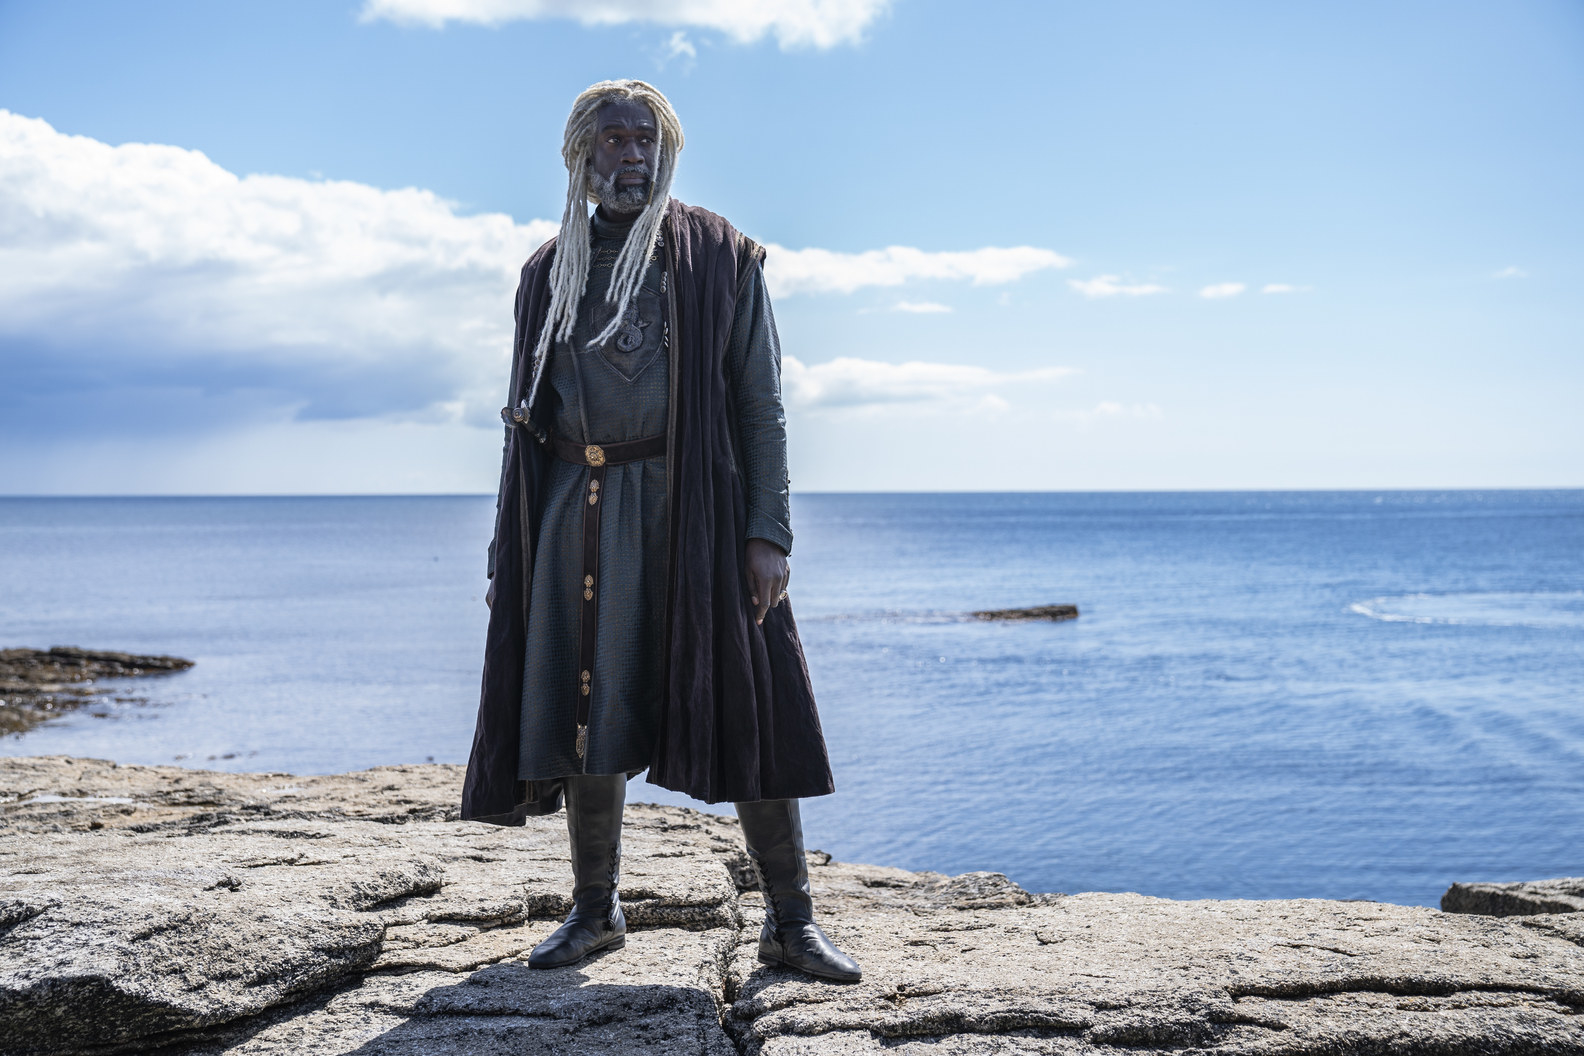 A character with long braided white hair and beard stands on a bluff in front of the ocean